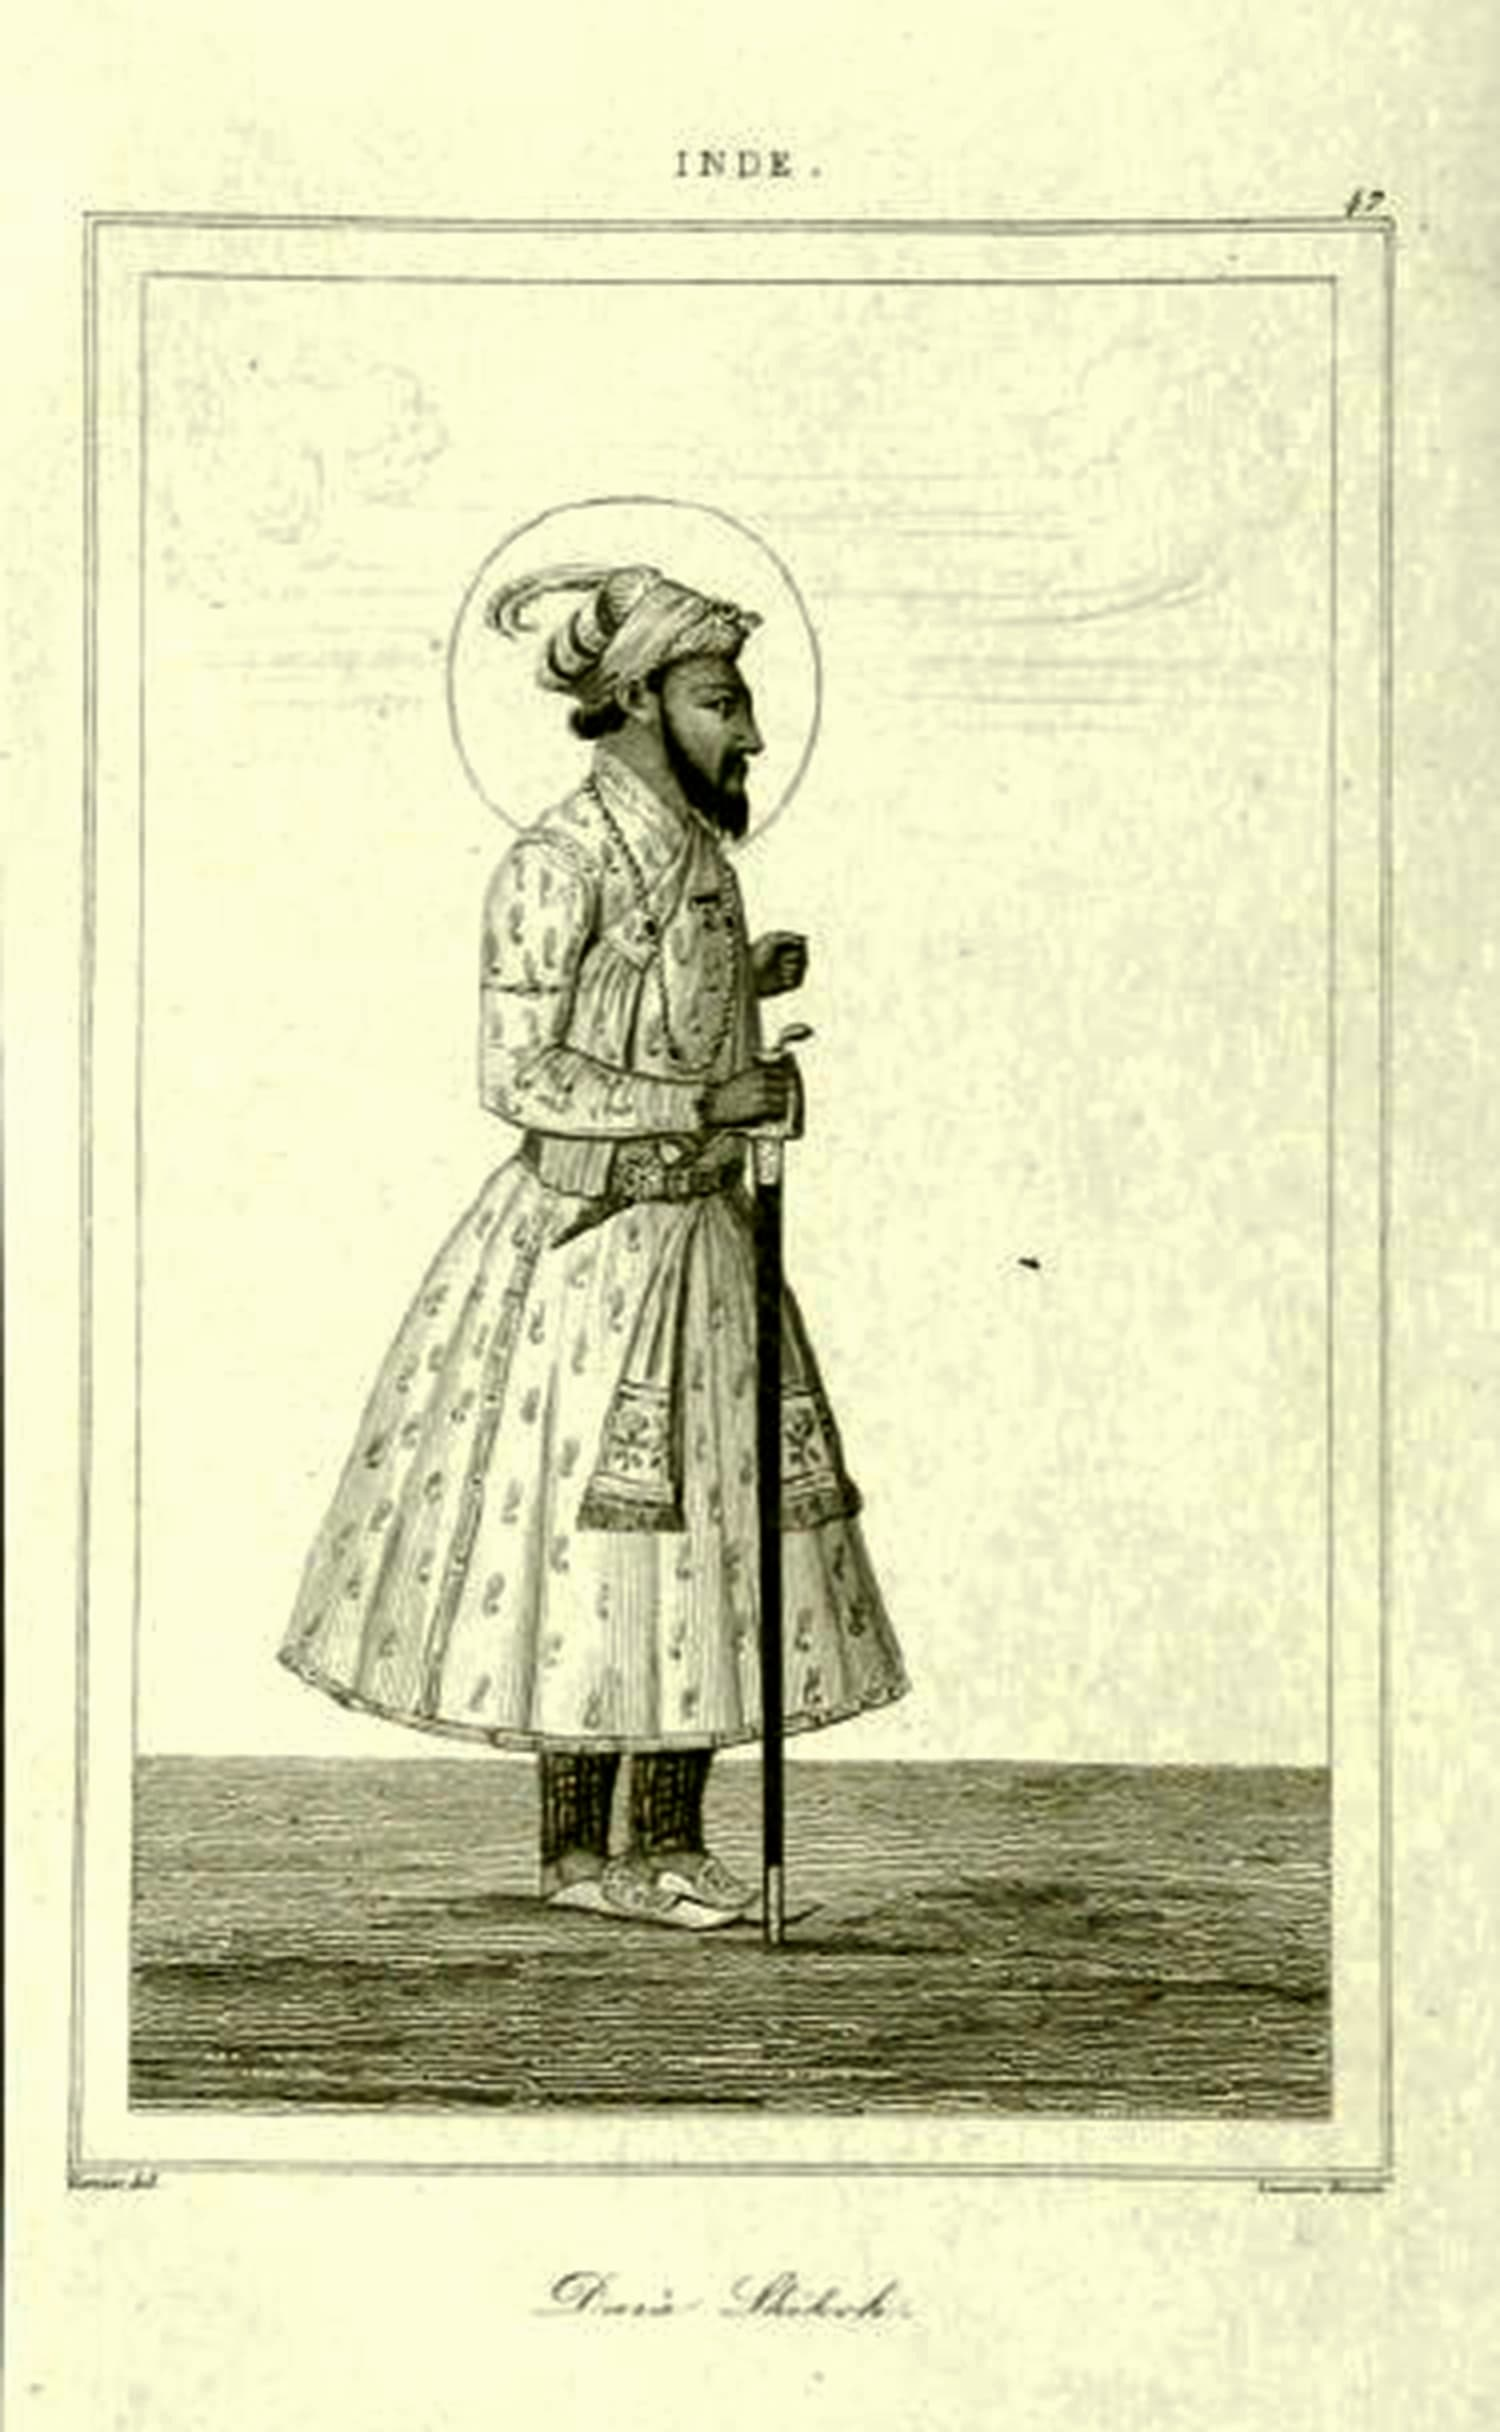 Dara Shikoh, a steel engraving, 1845. The Gurdwara Shaheed Ganj in Lahore is believed to stand at the spot that once housed the palace of Prince Dara Shikoh. (Credit: Wikimedia Commons)